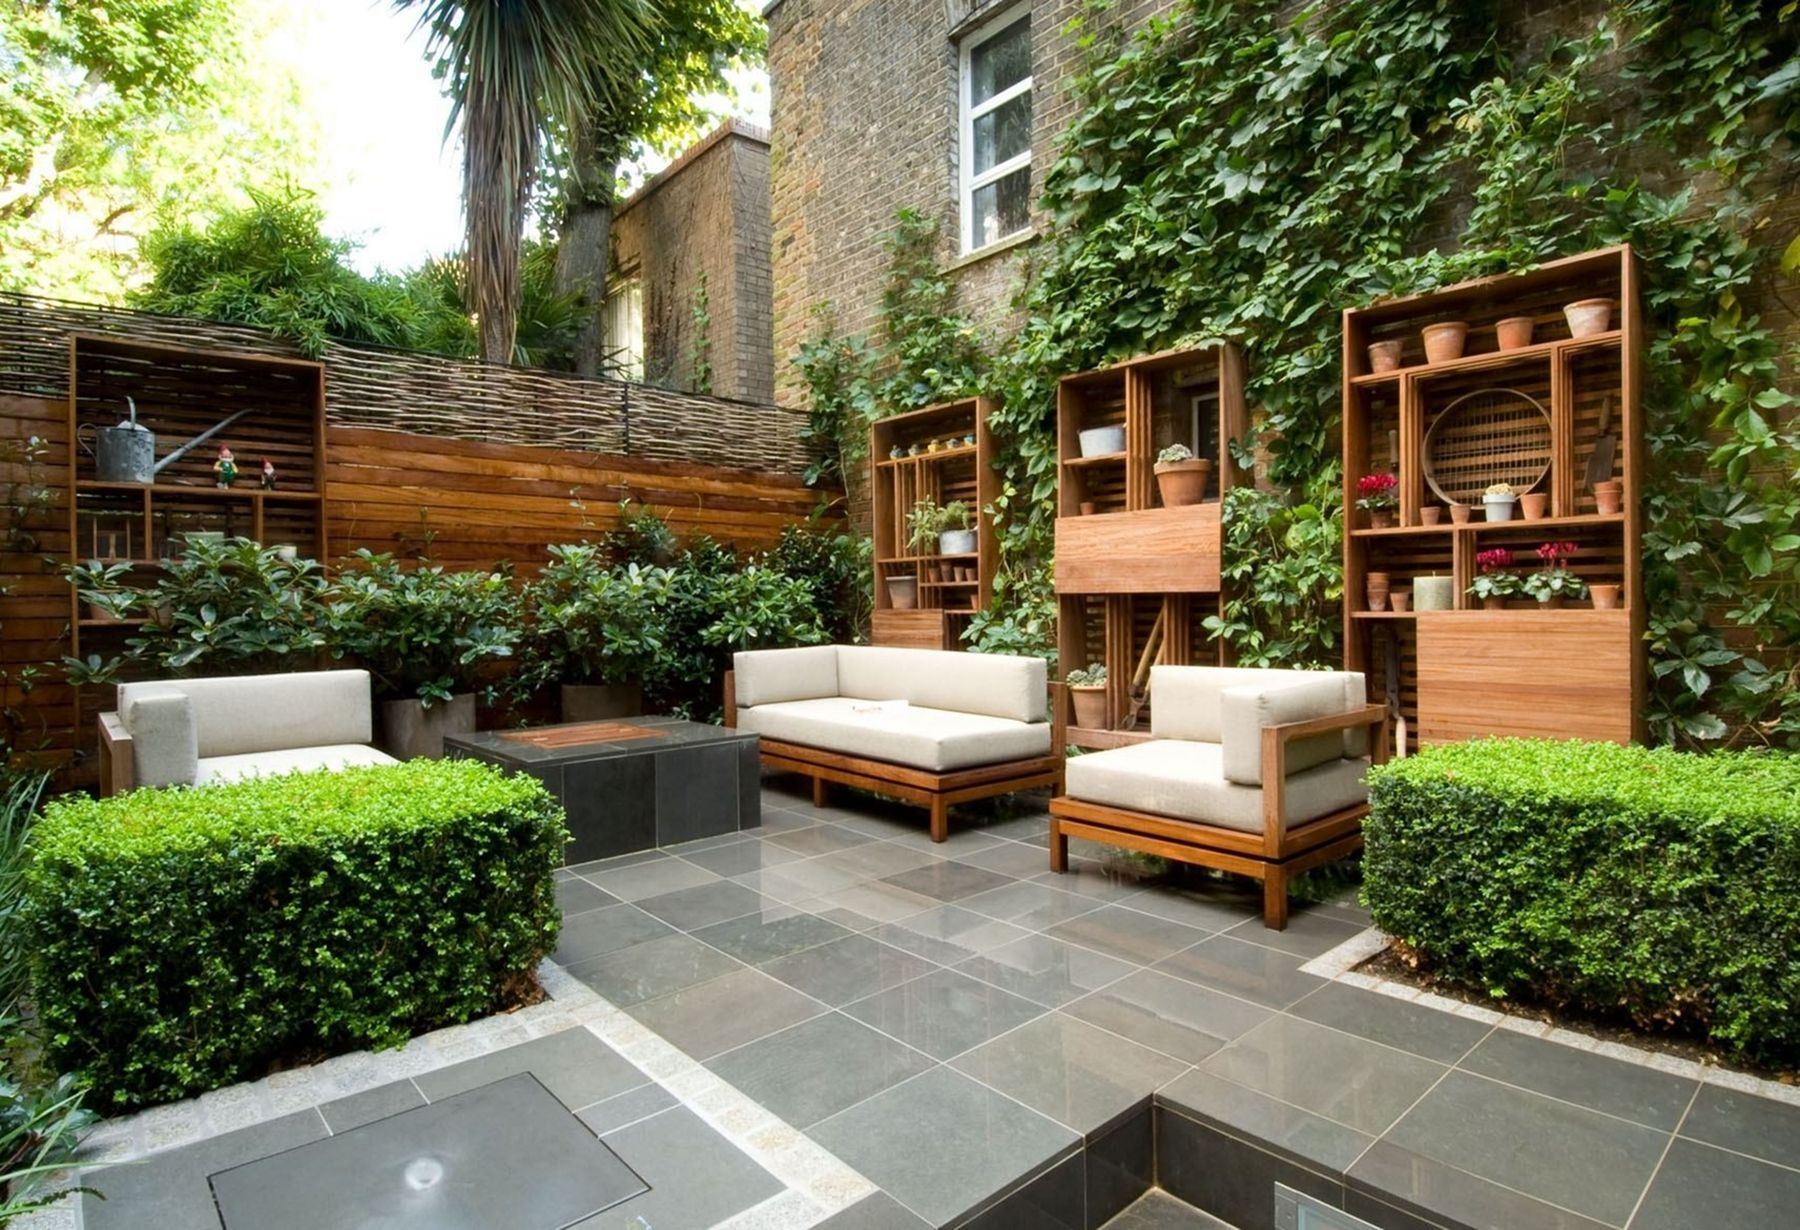 10 The Back Garden Design Ideas Are Stunning To Beautify Your Home